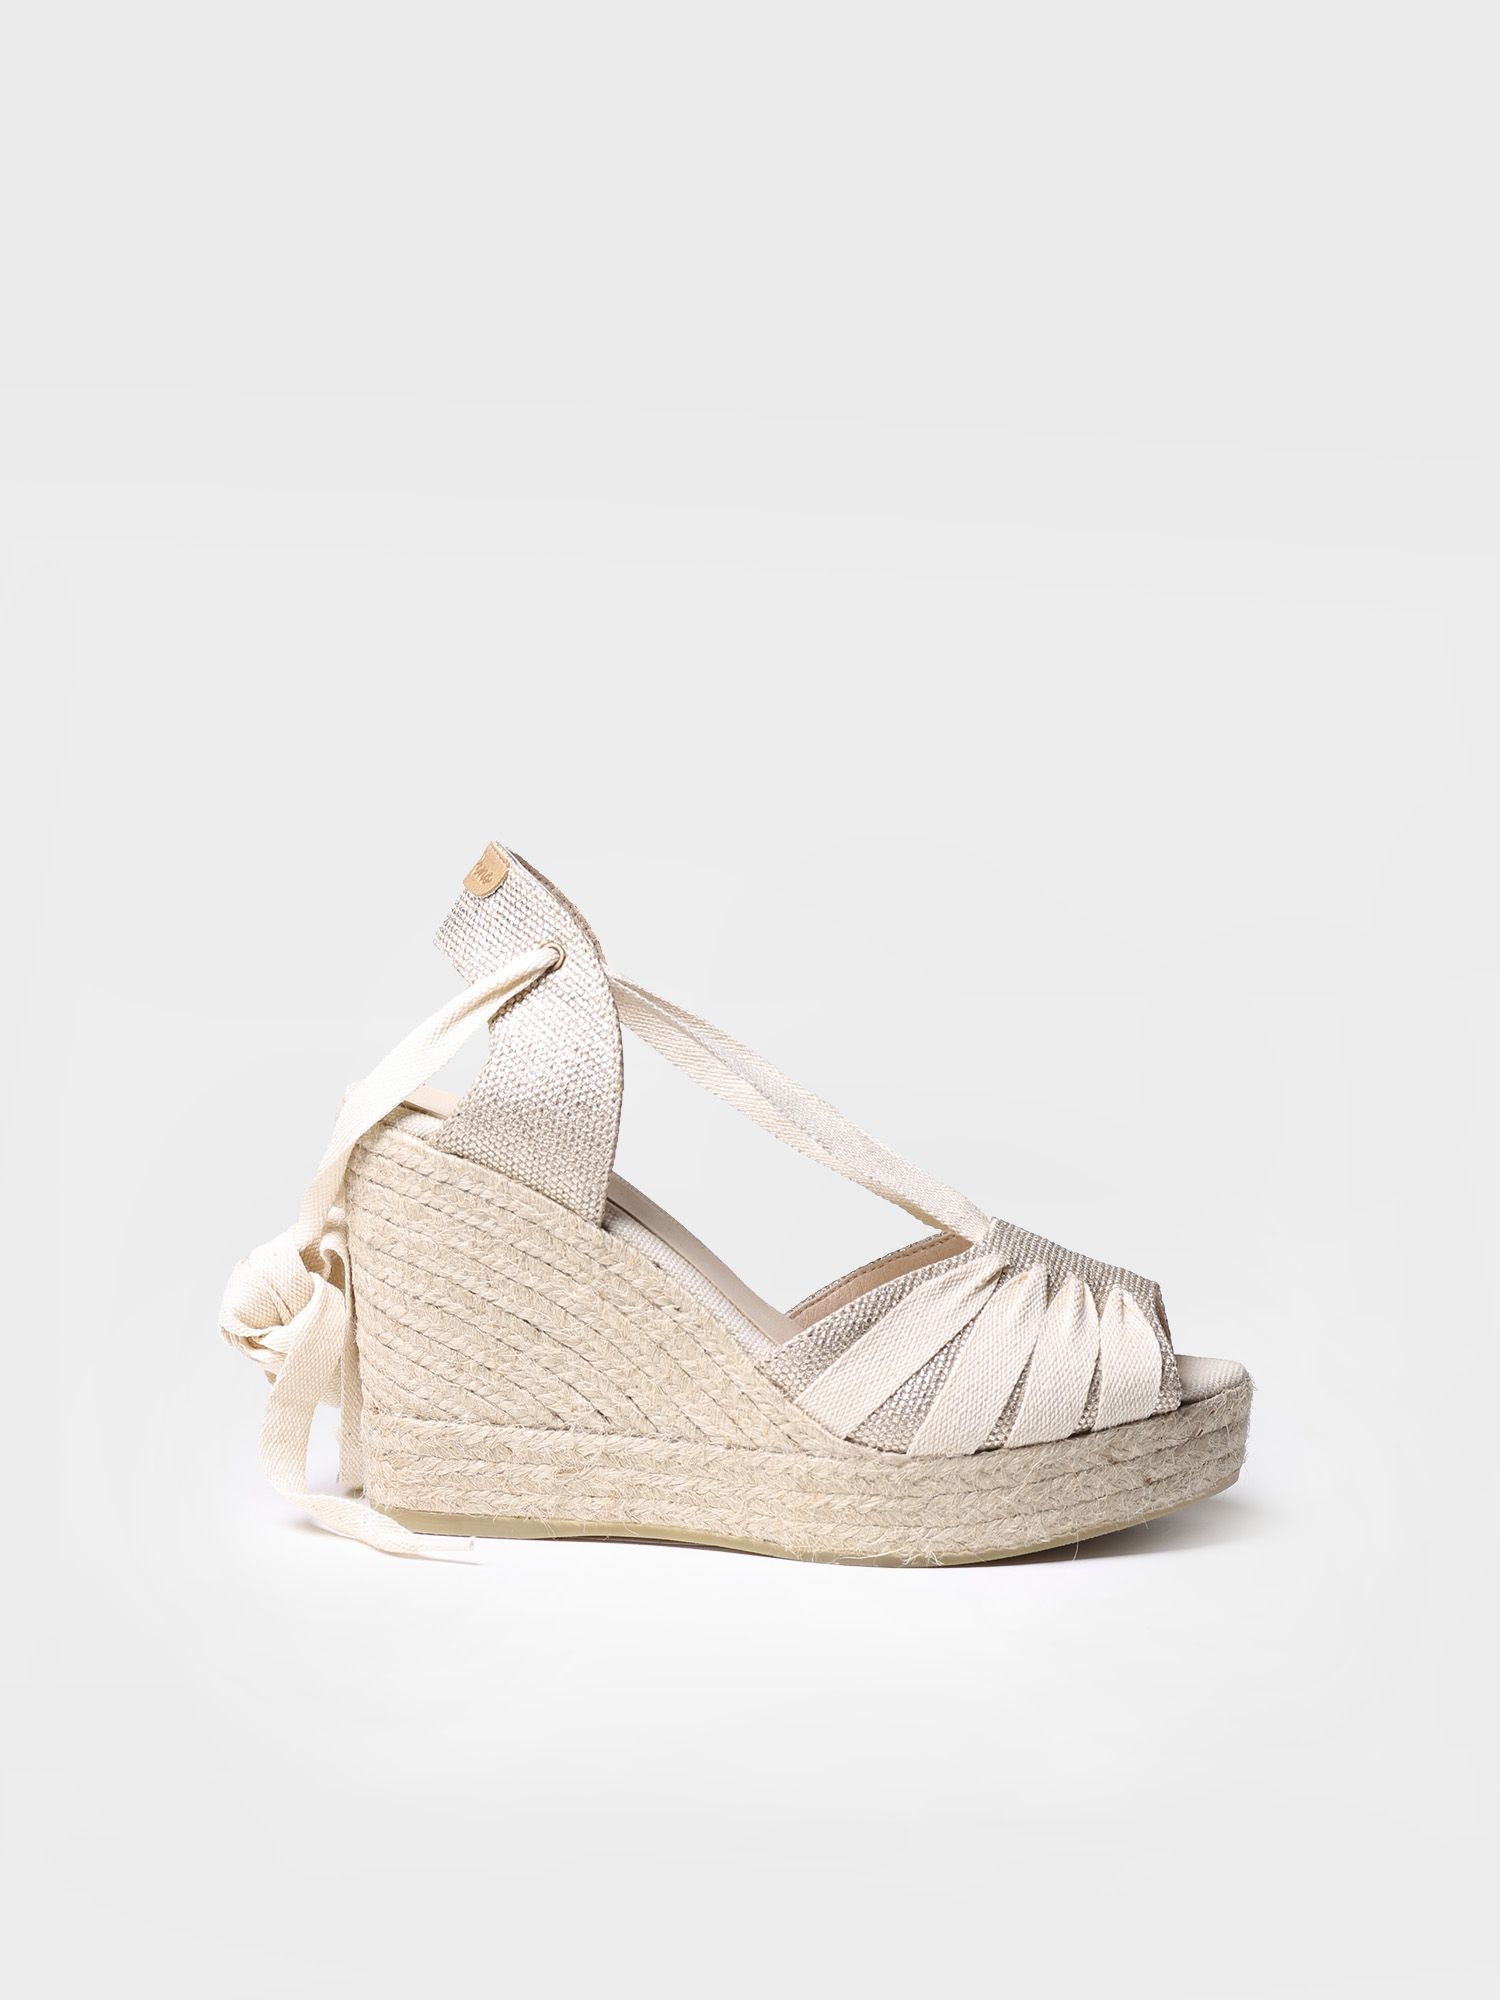 Valenciana espadrille high wedge - PALS-OR